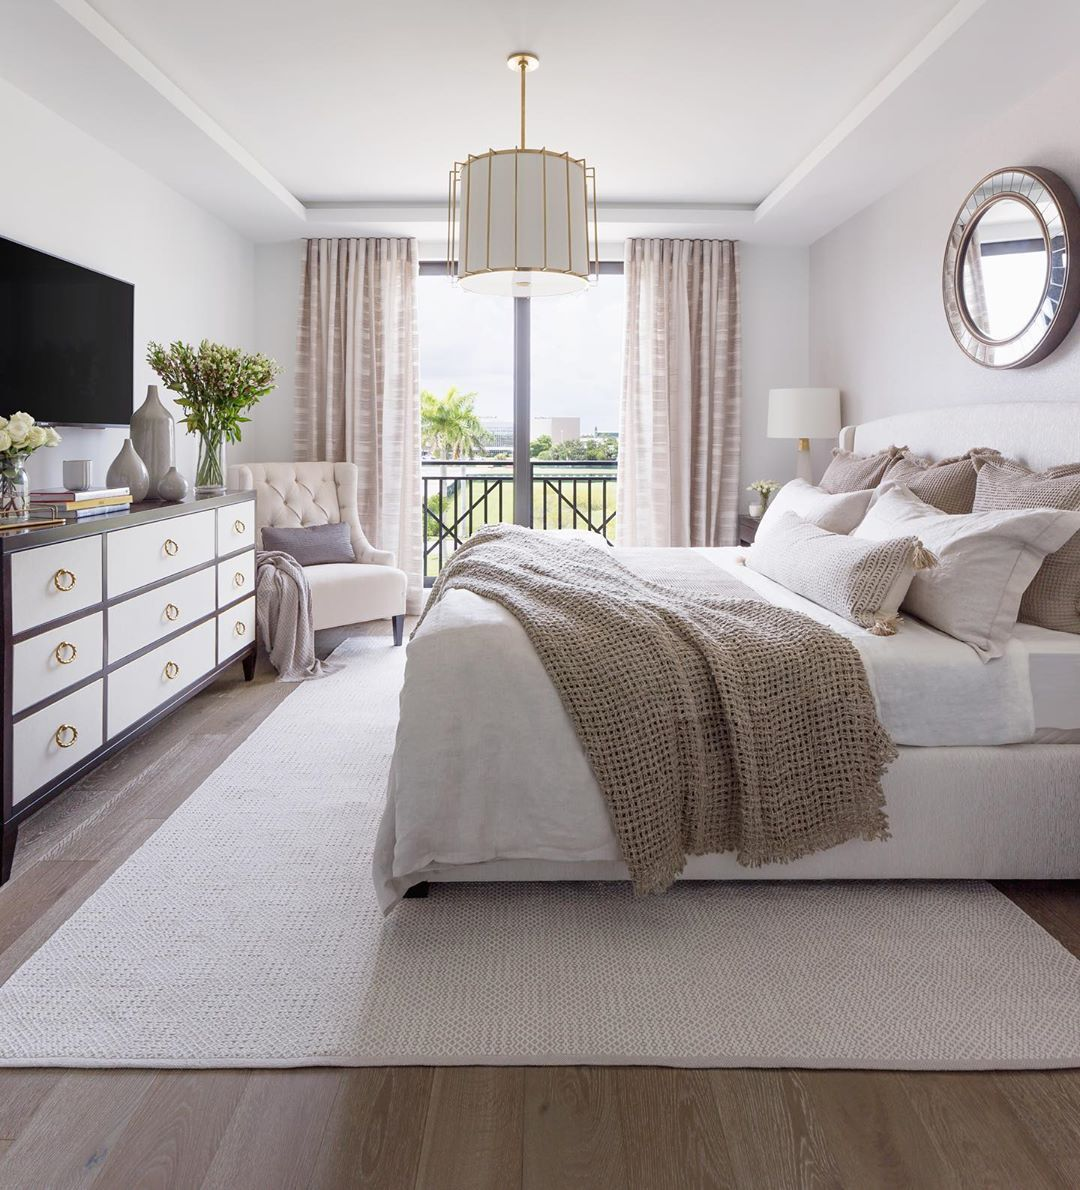 Pin On House Decor Ideas Napa chictransitional master bedroom